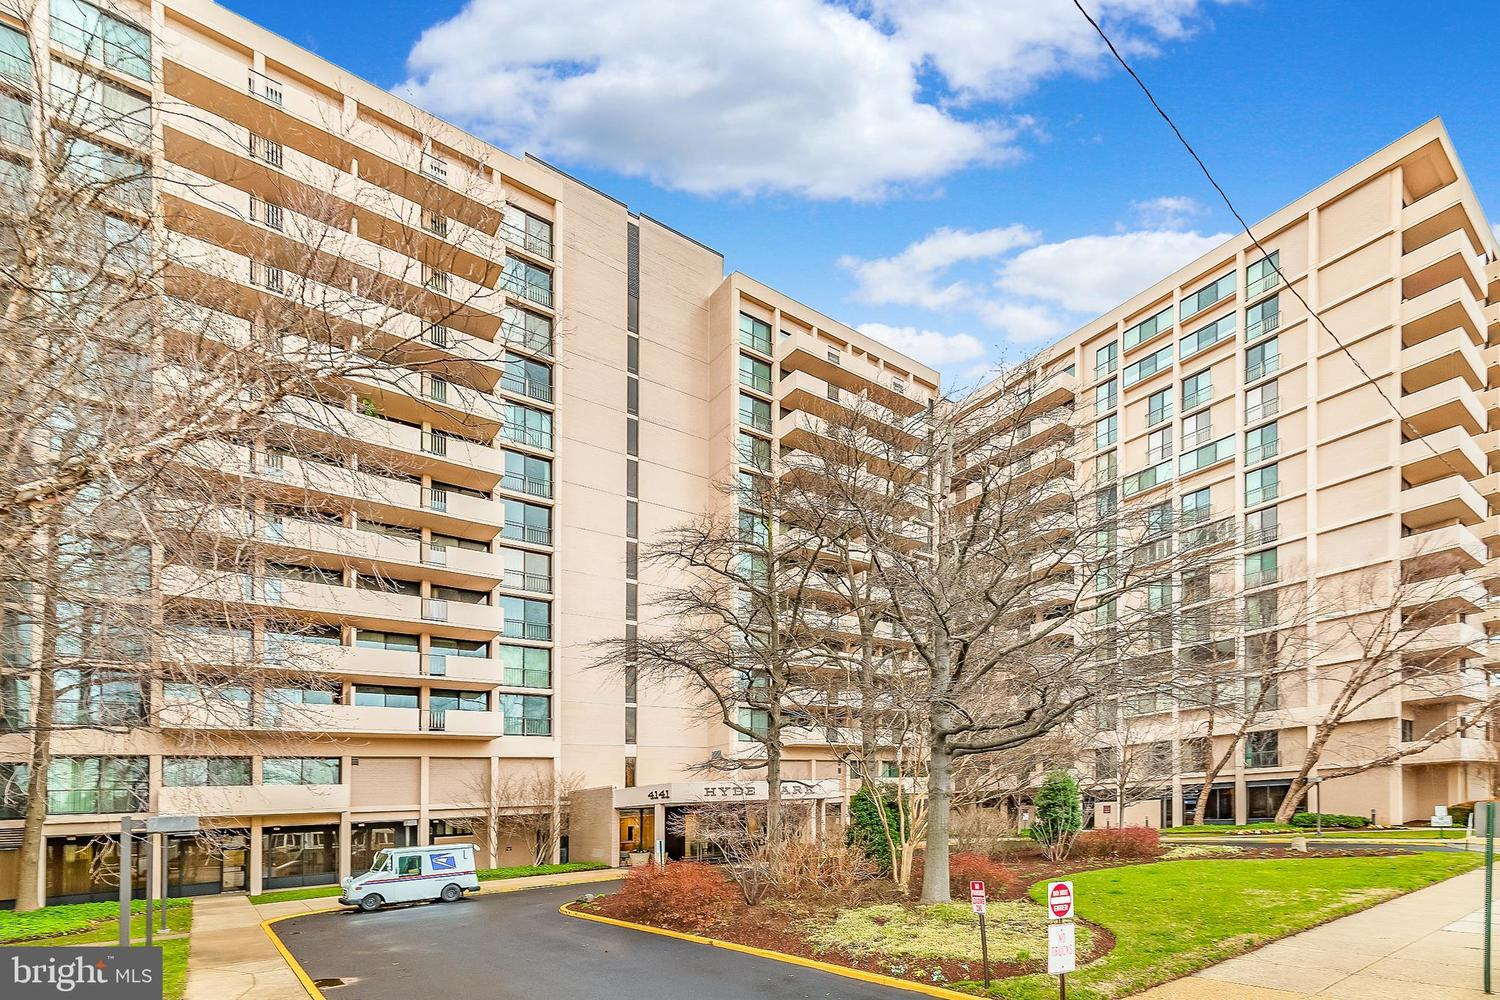 4141 North Henderson Road, Unit 313 Arlington, VA 22203